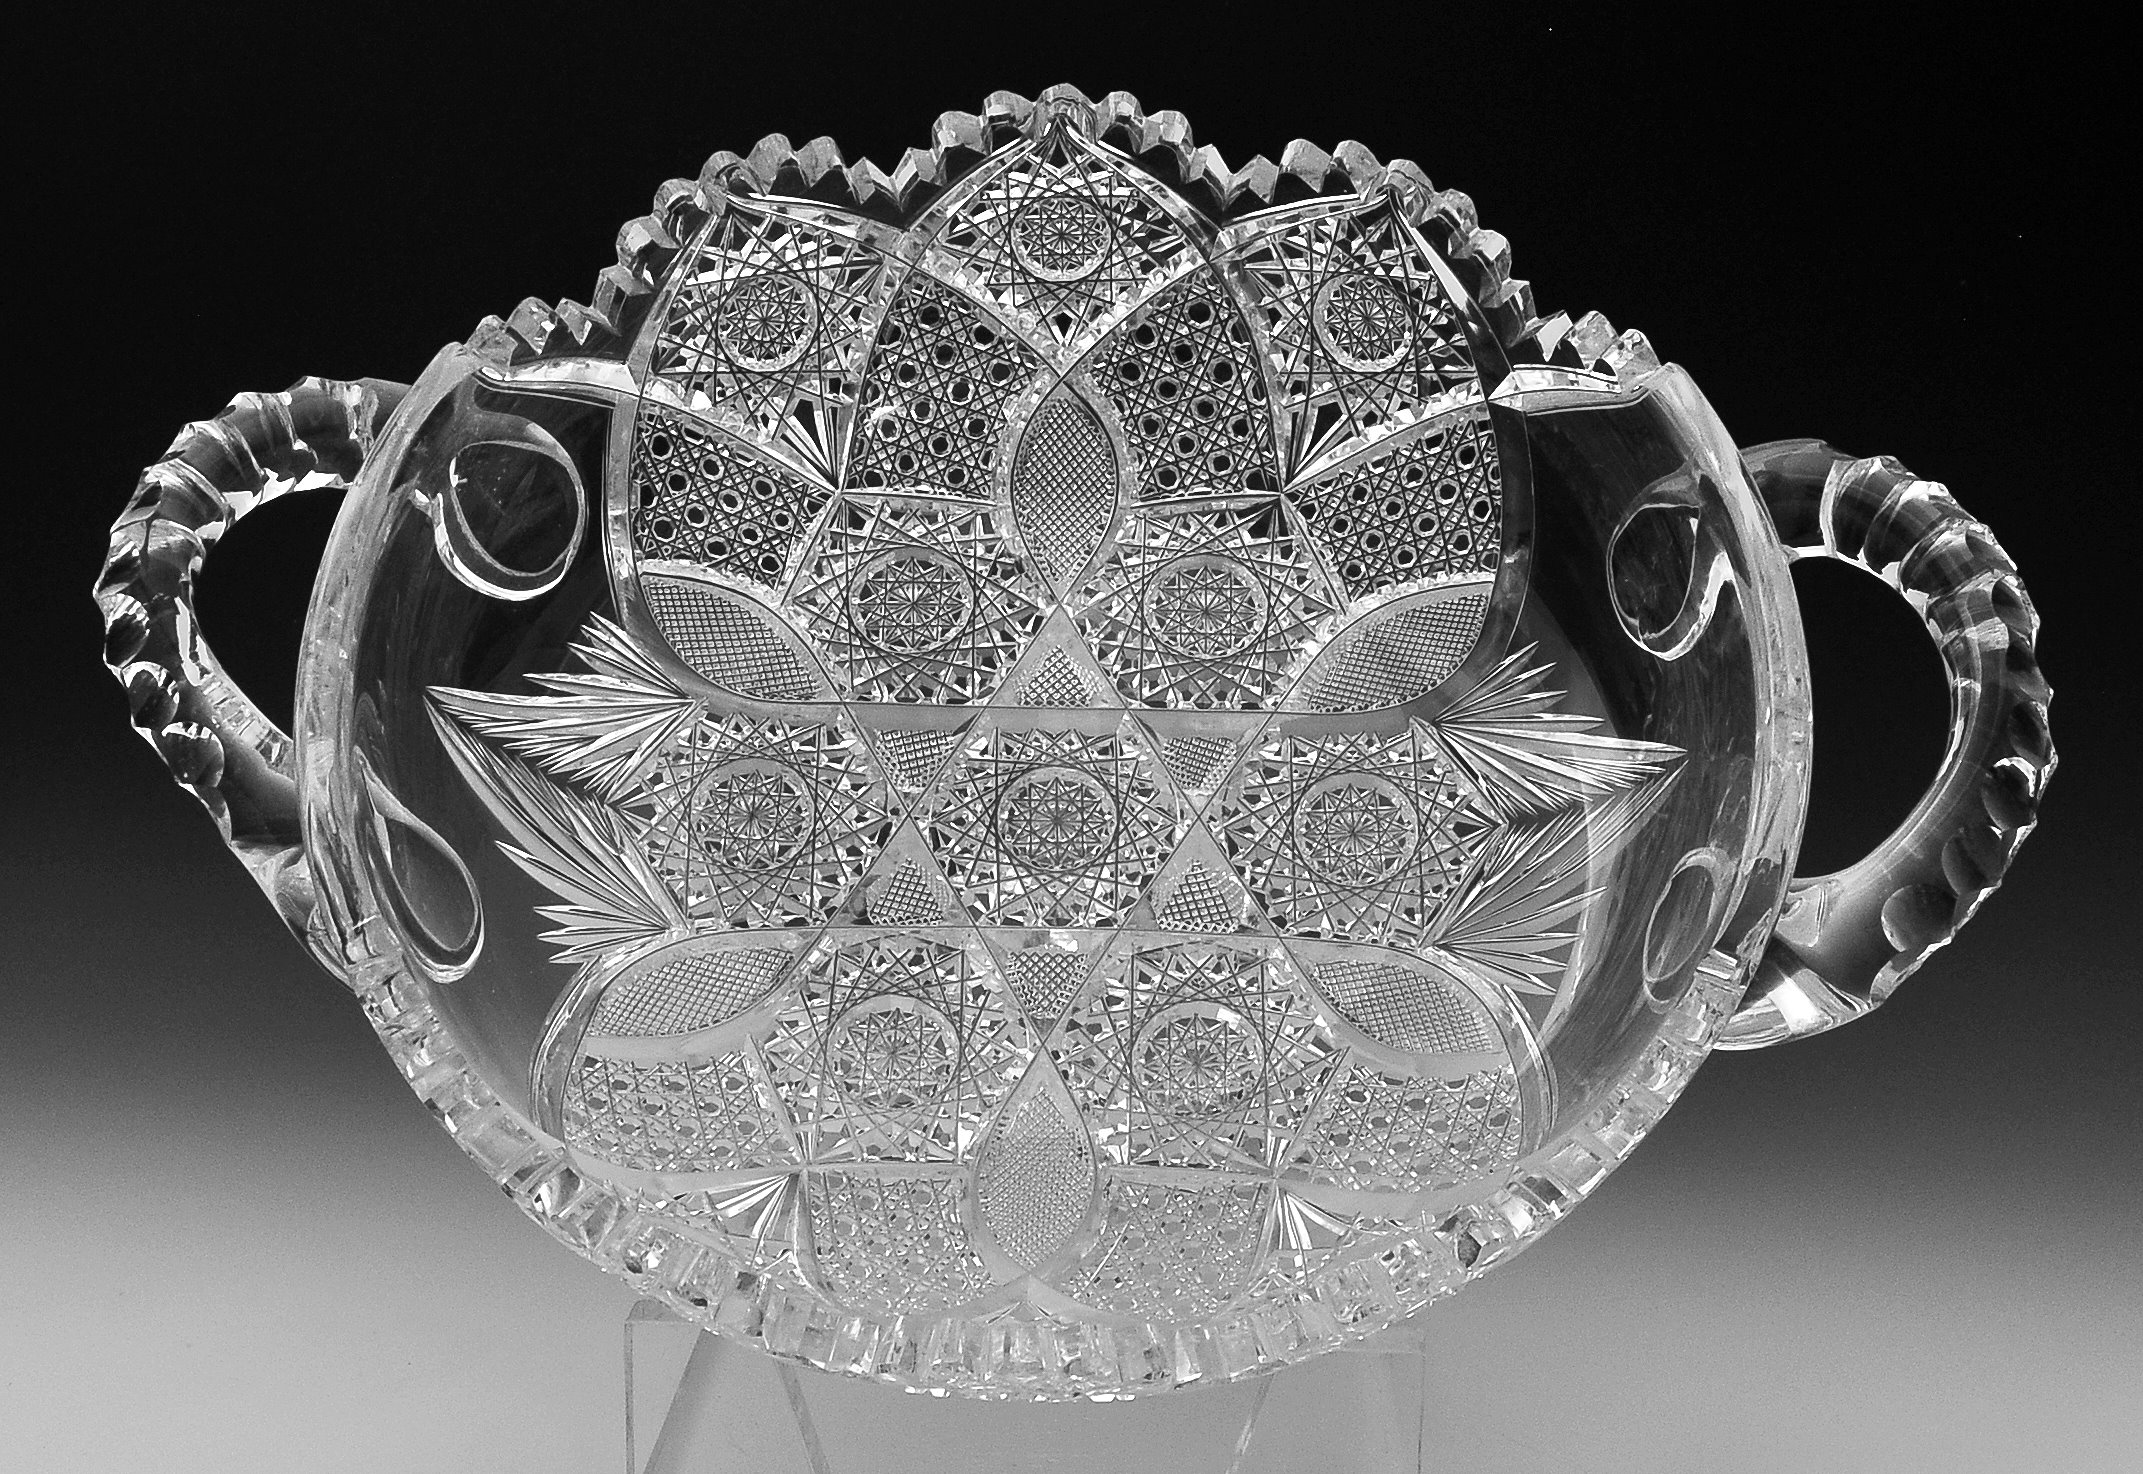 Two-Handled Low Bowl - FSG2878 Image